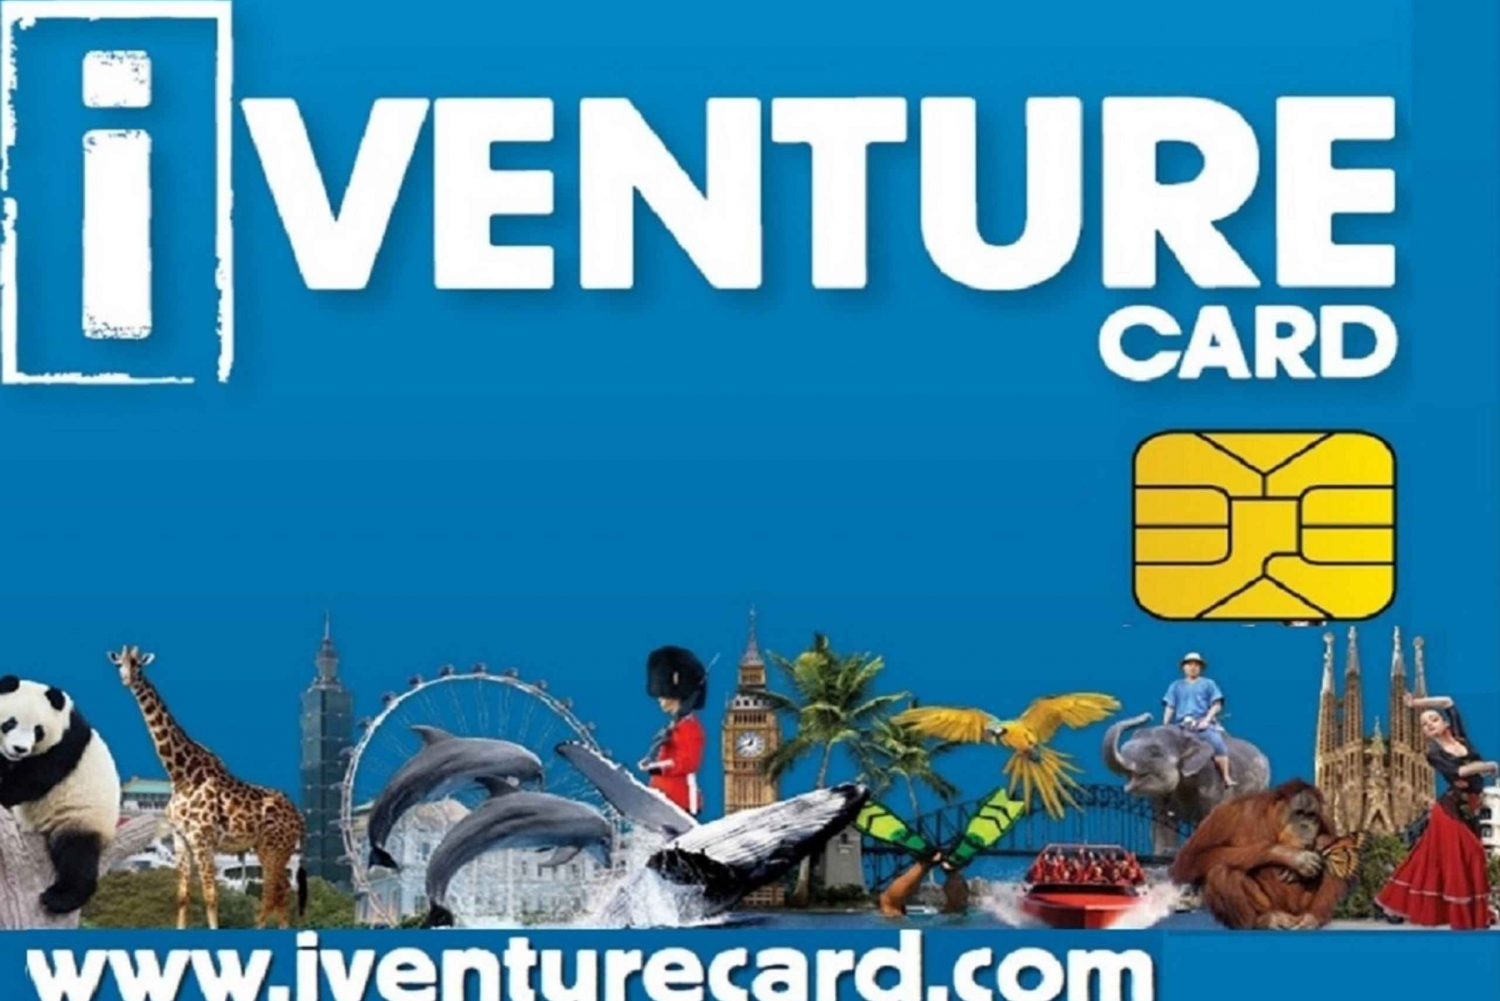 Madrid iVenture Card: The Must-See Attractions in Your Hand